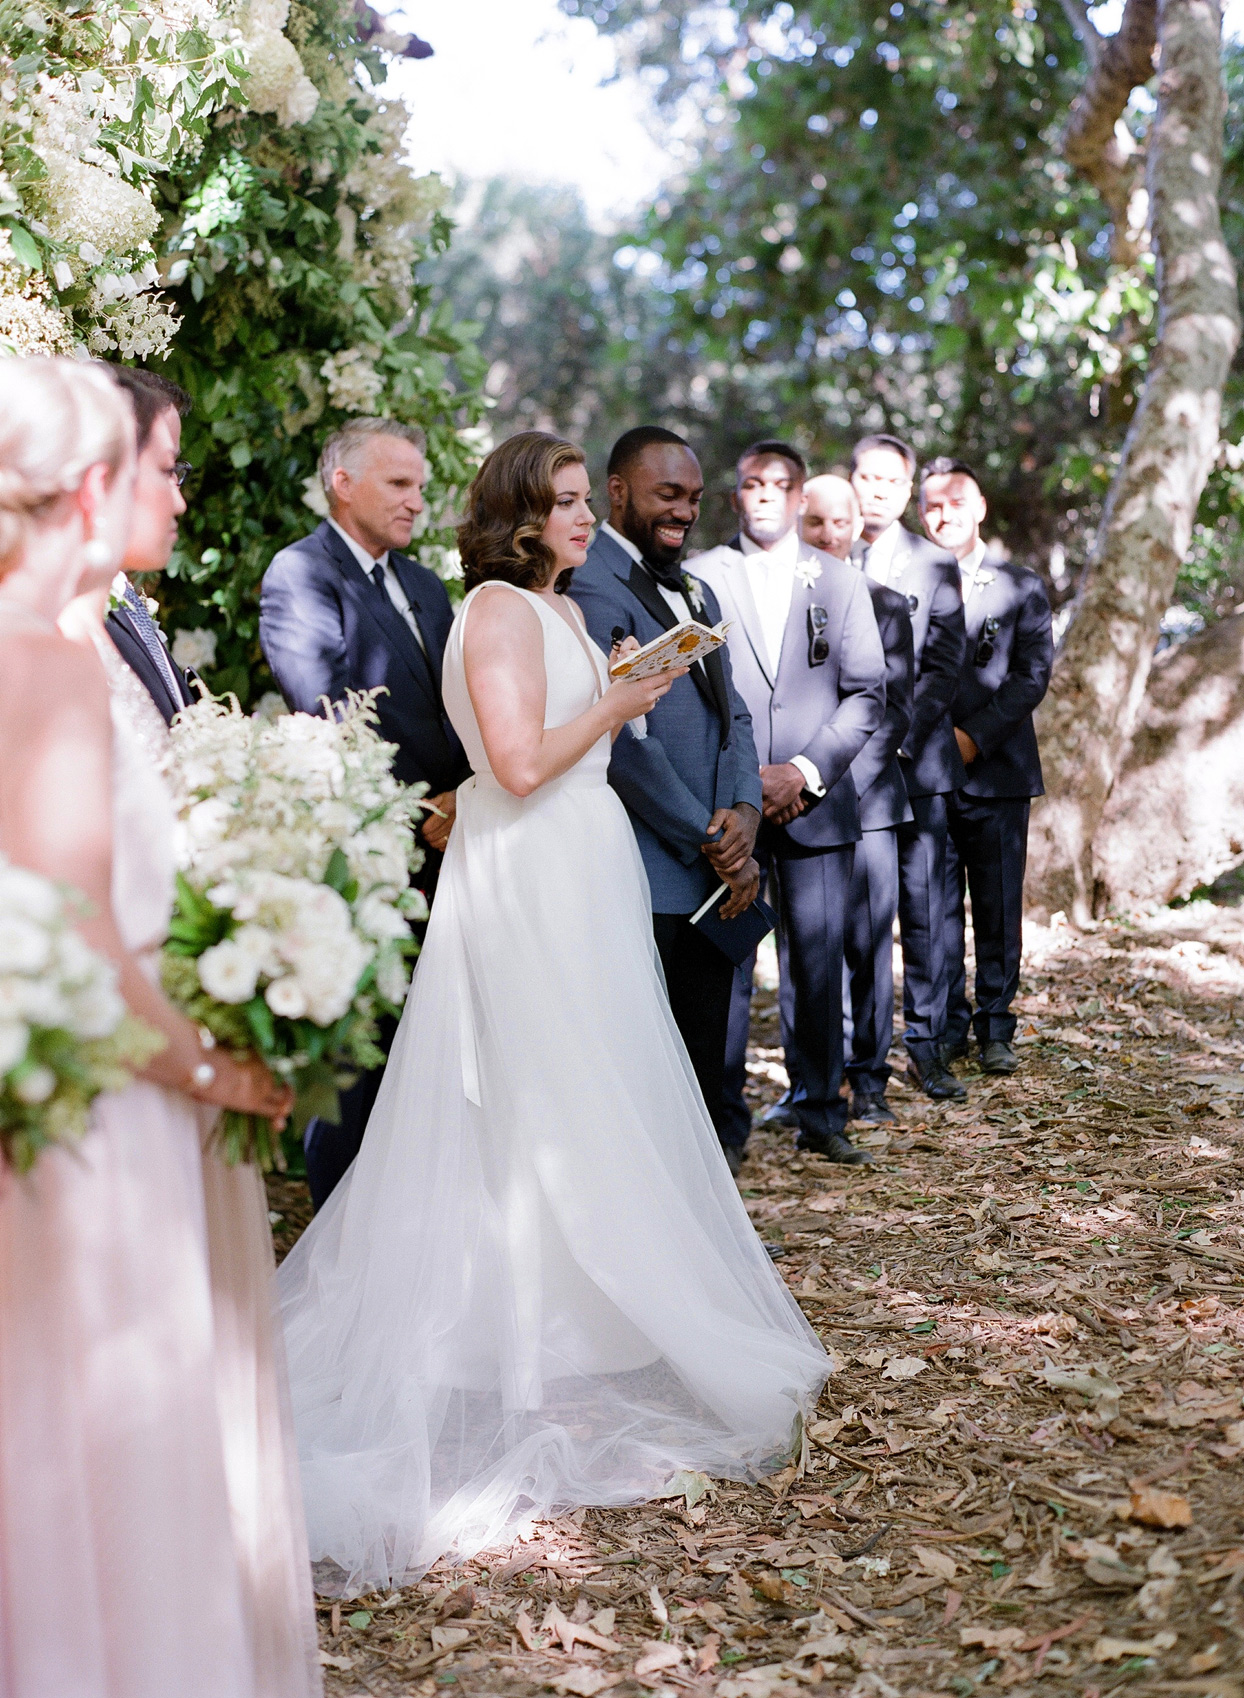 bride and groom reading vows during outdoor wedding ceremony